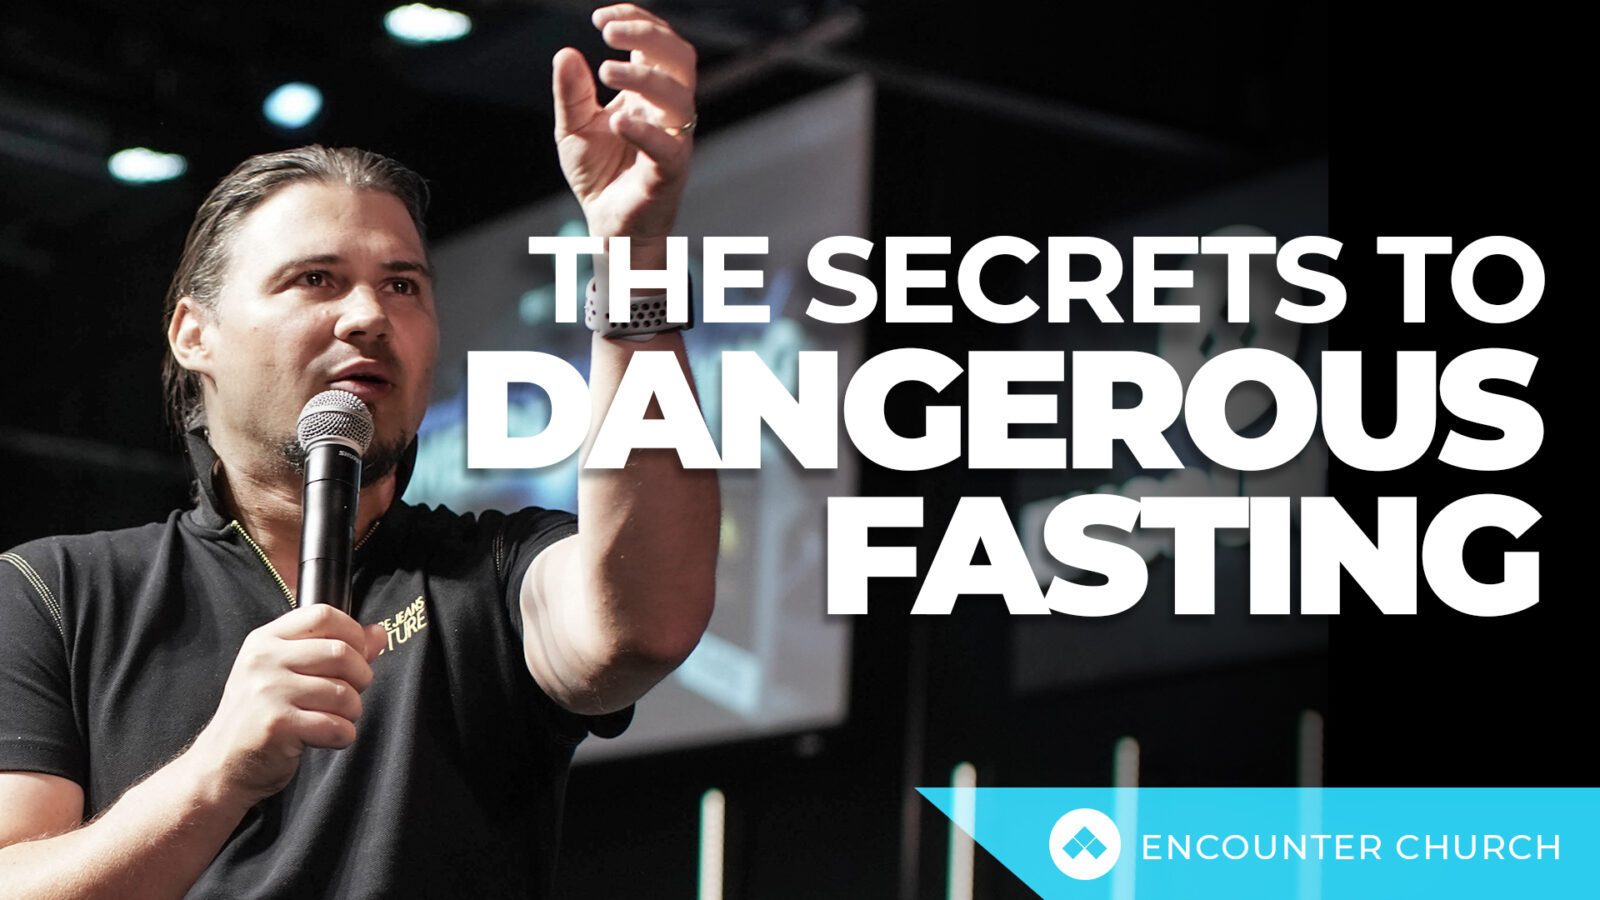 The Secrets to Dangerous Fasting